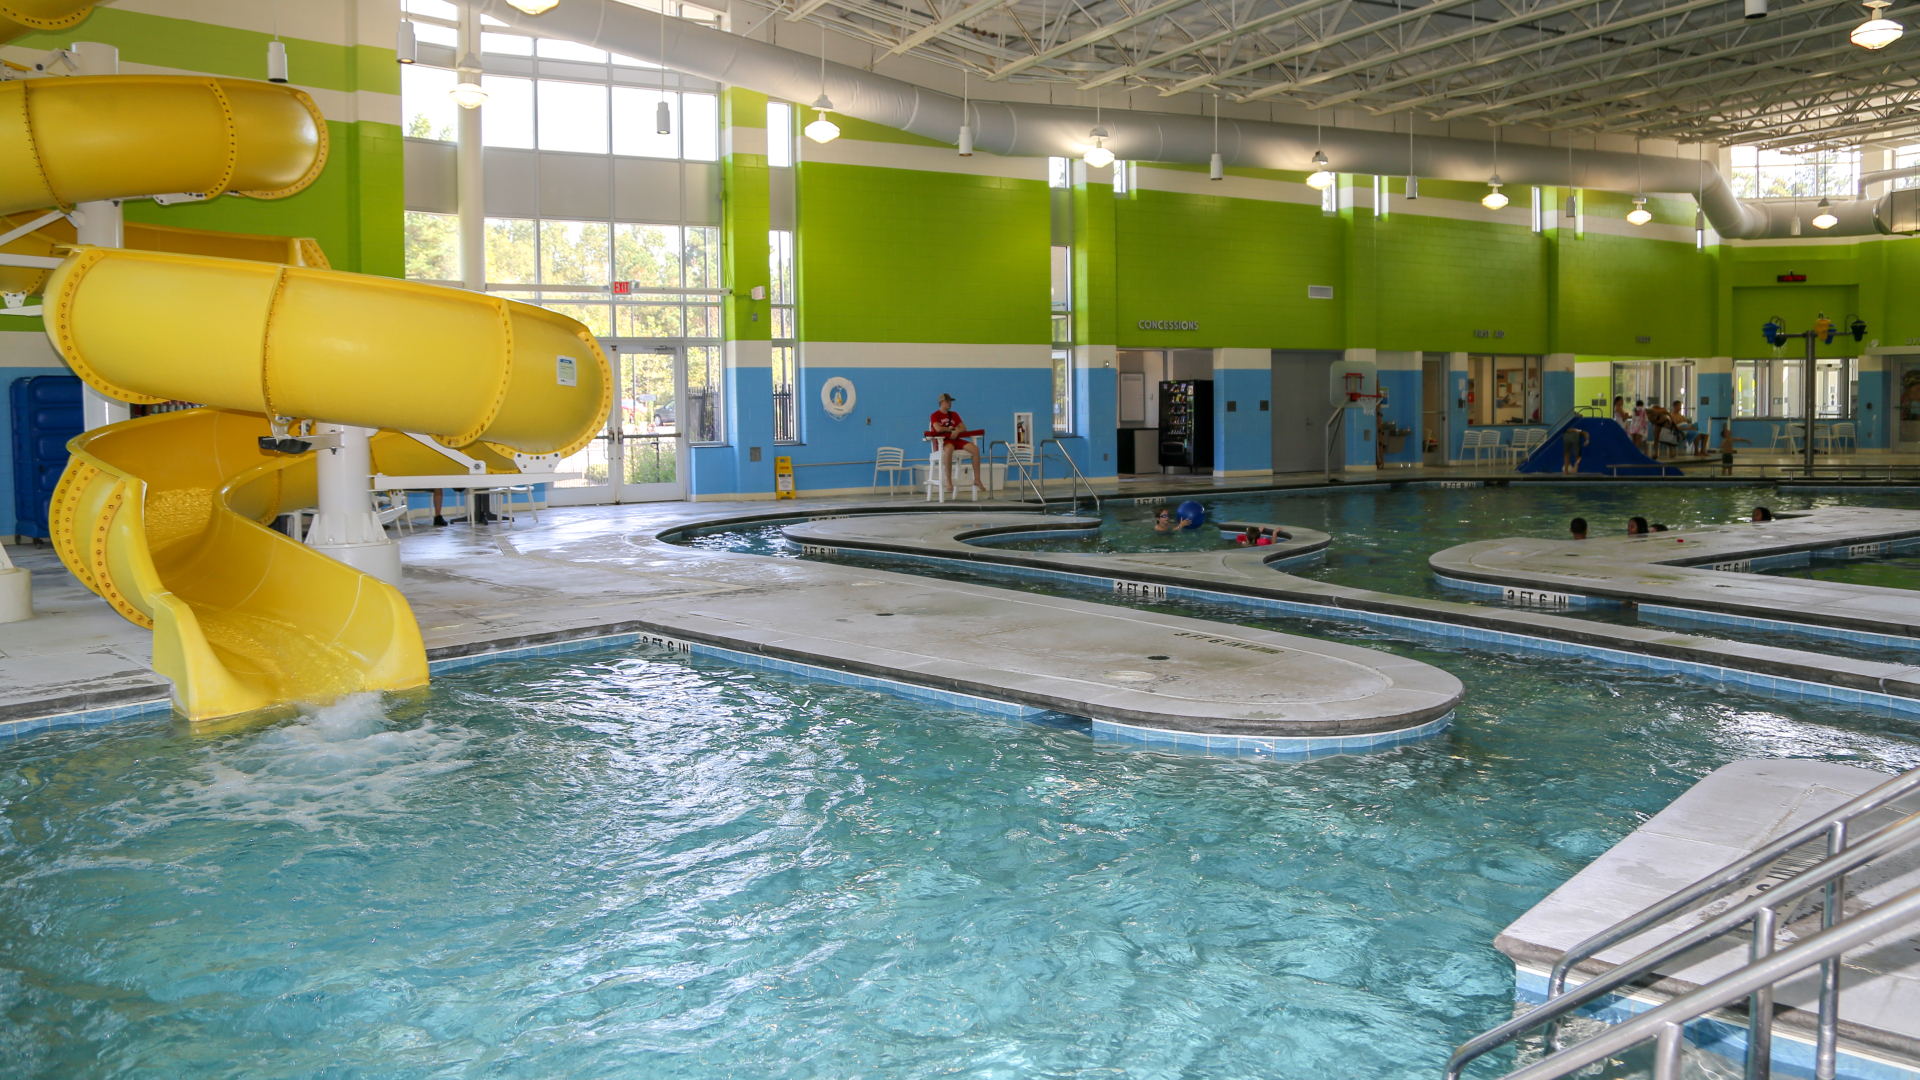 View of the slide and pool of the Buffaloe Road Aquatic Center